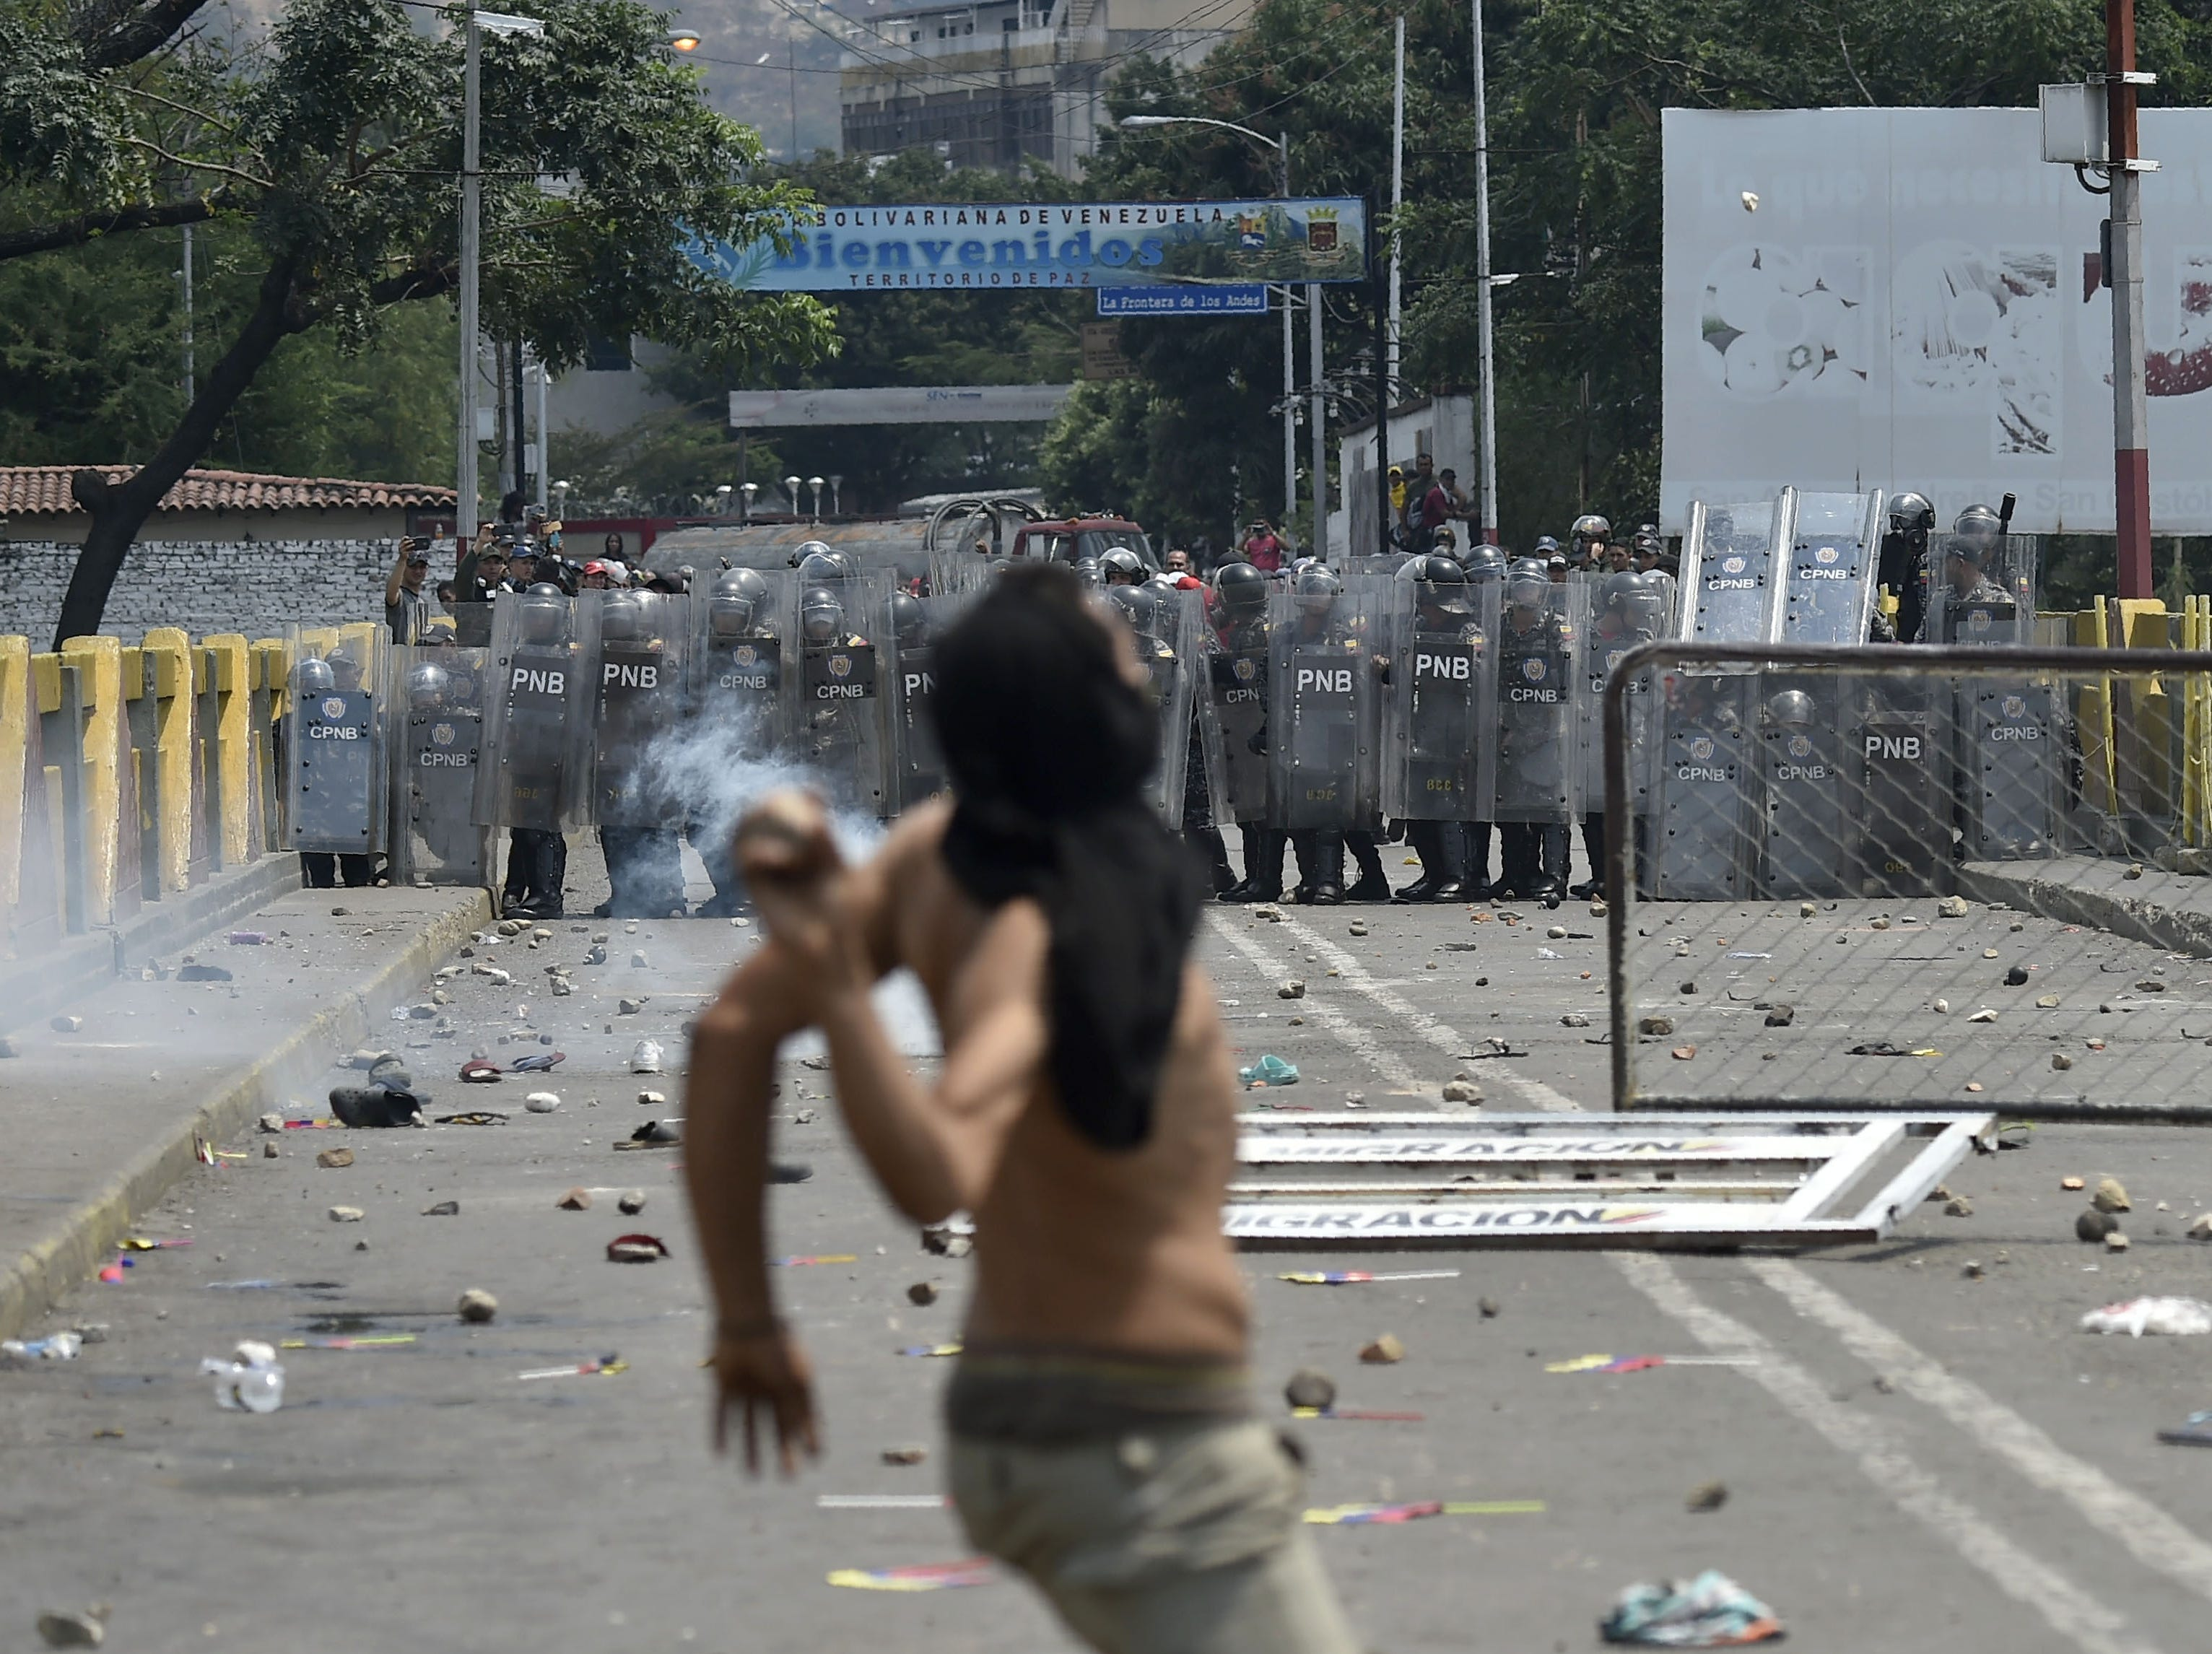 Demonstrators clash with Venezuelan national police at the Simon Bolivar bridge, in Cucuta, Colombia after President Nicolas Maduro's government ordered a temporary close-down of the border with Colombia on Feb. 23, 2019.